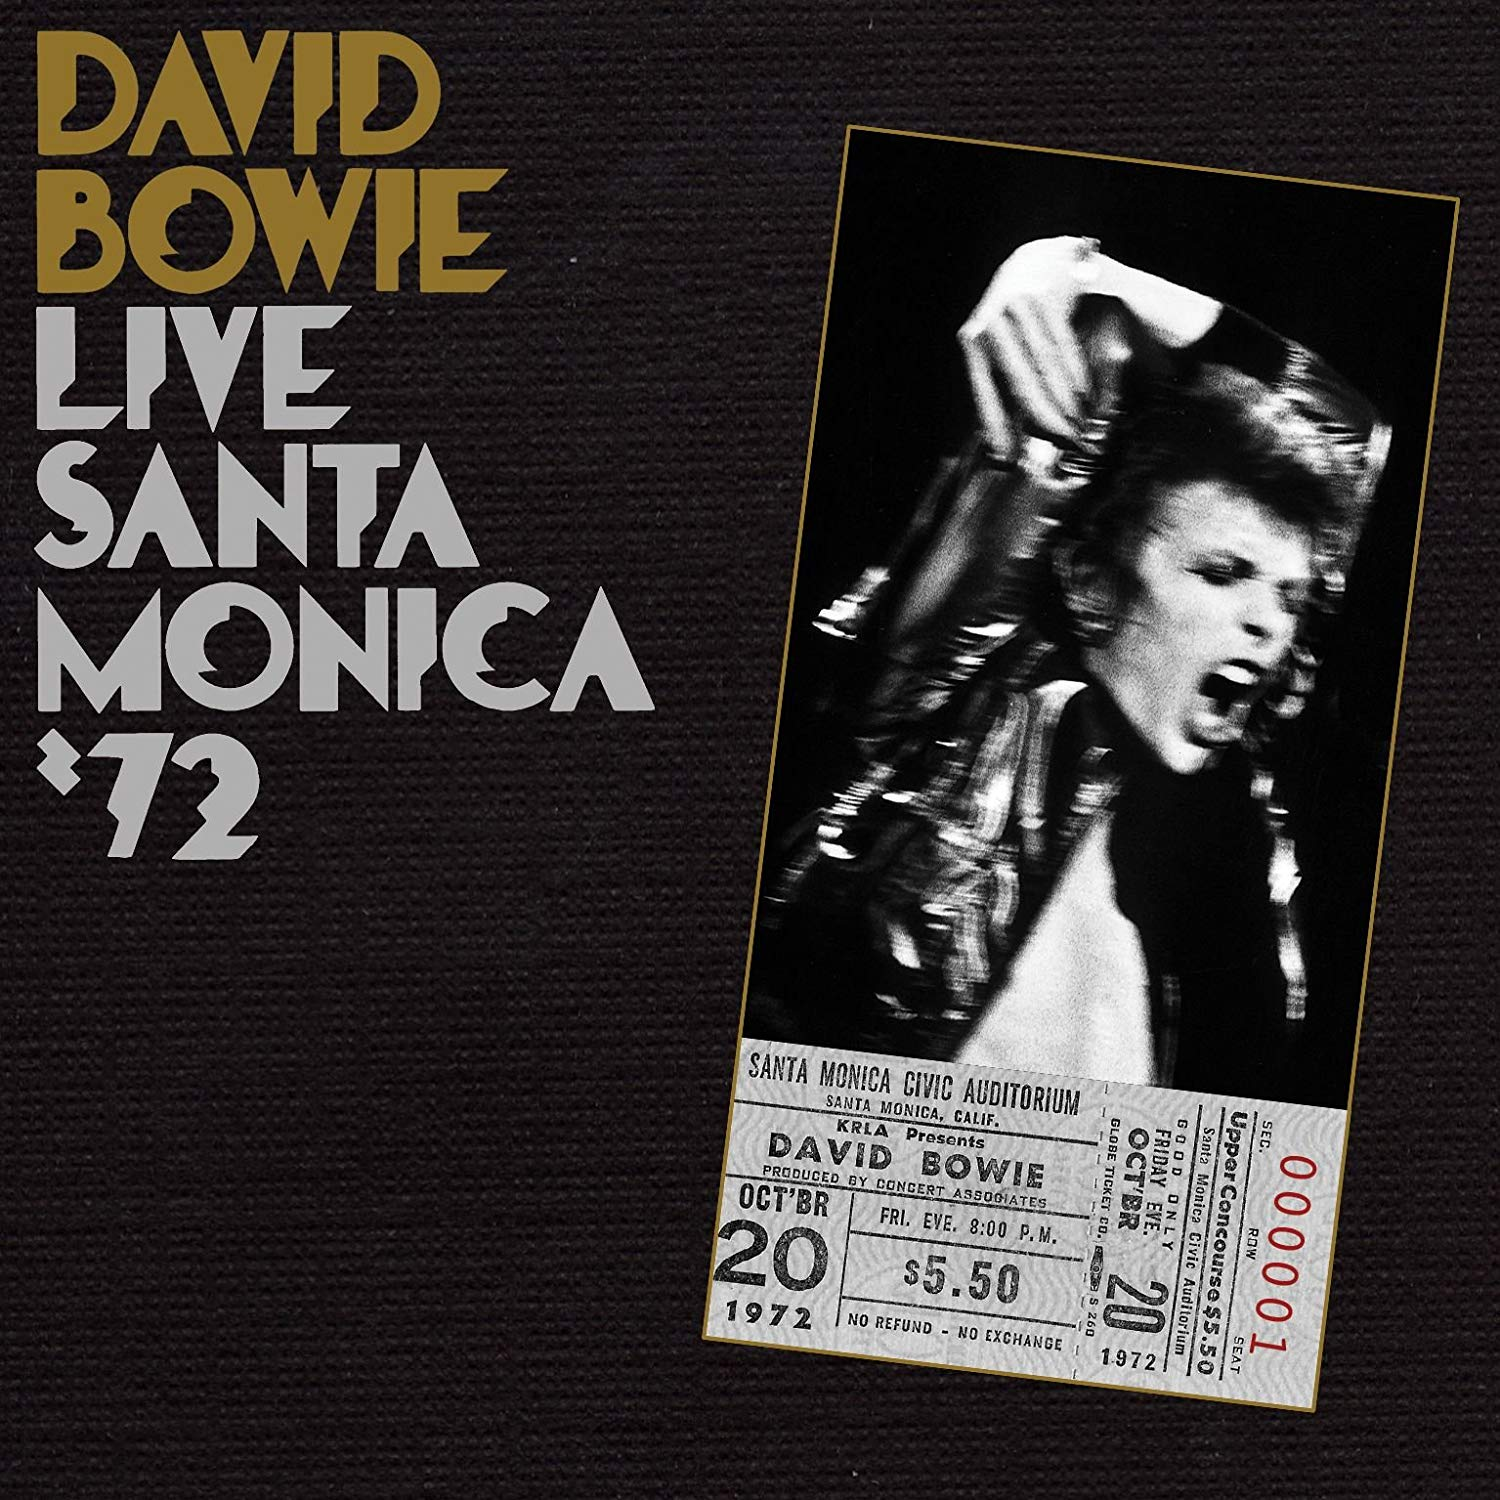 David Bowie Live in Santa Monica 72